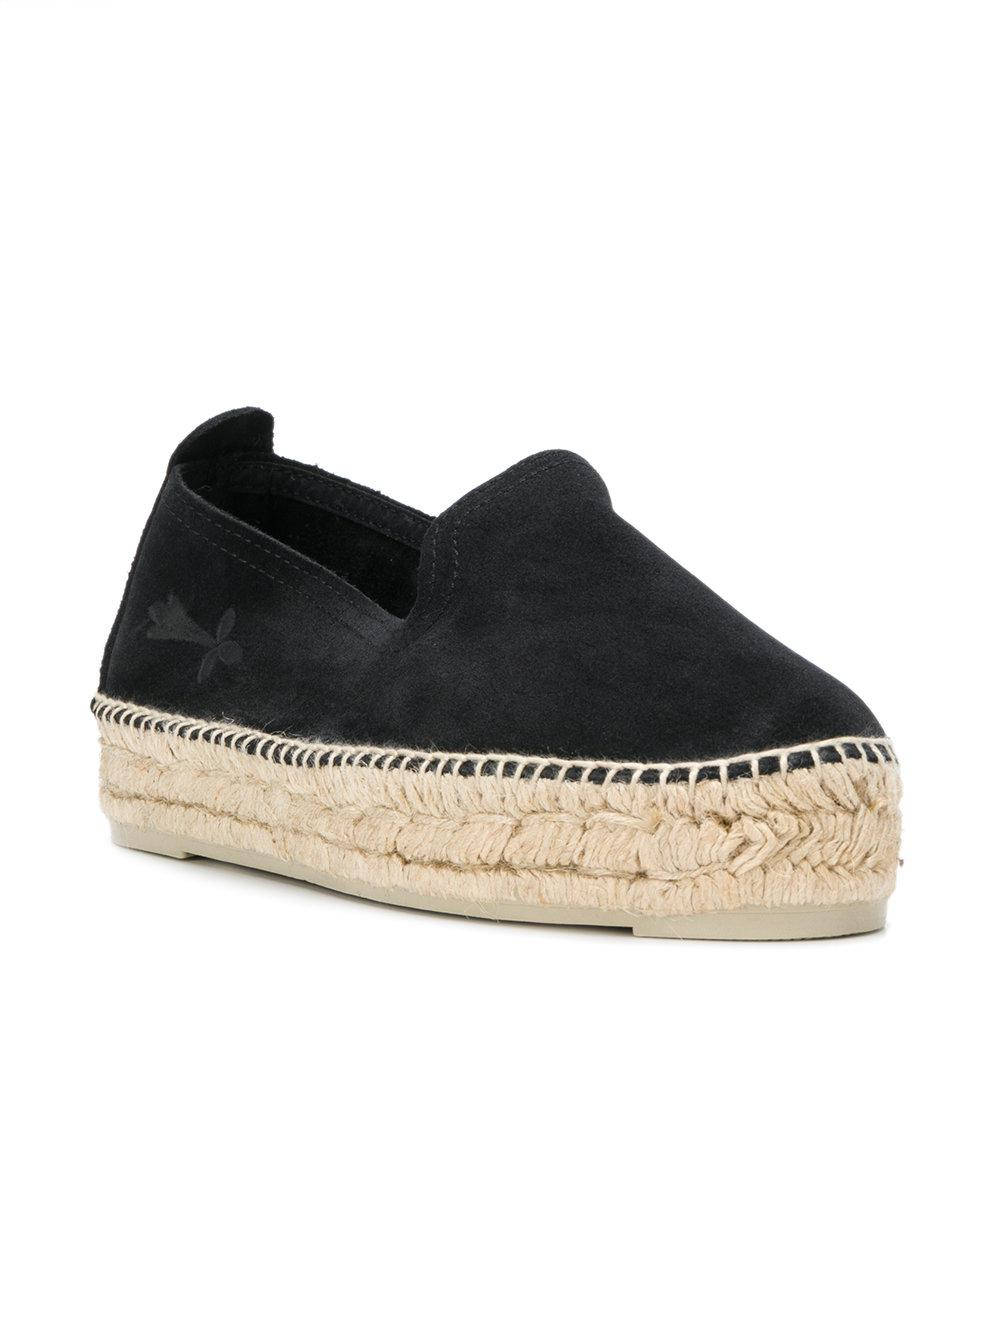 Manebí Suede Chunky Sole Espadrilles in